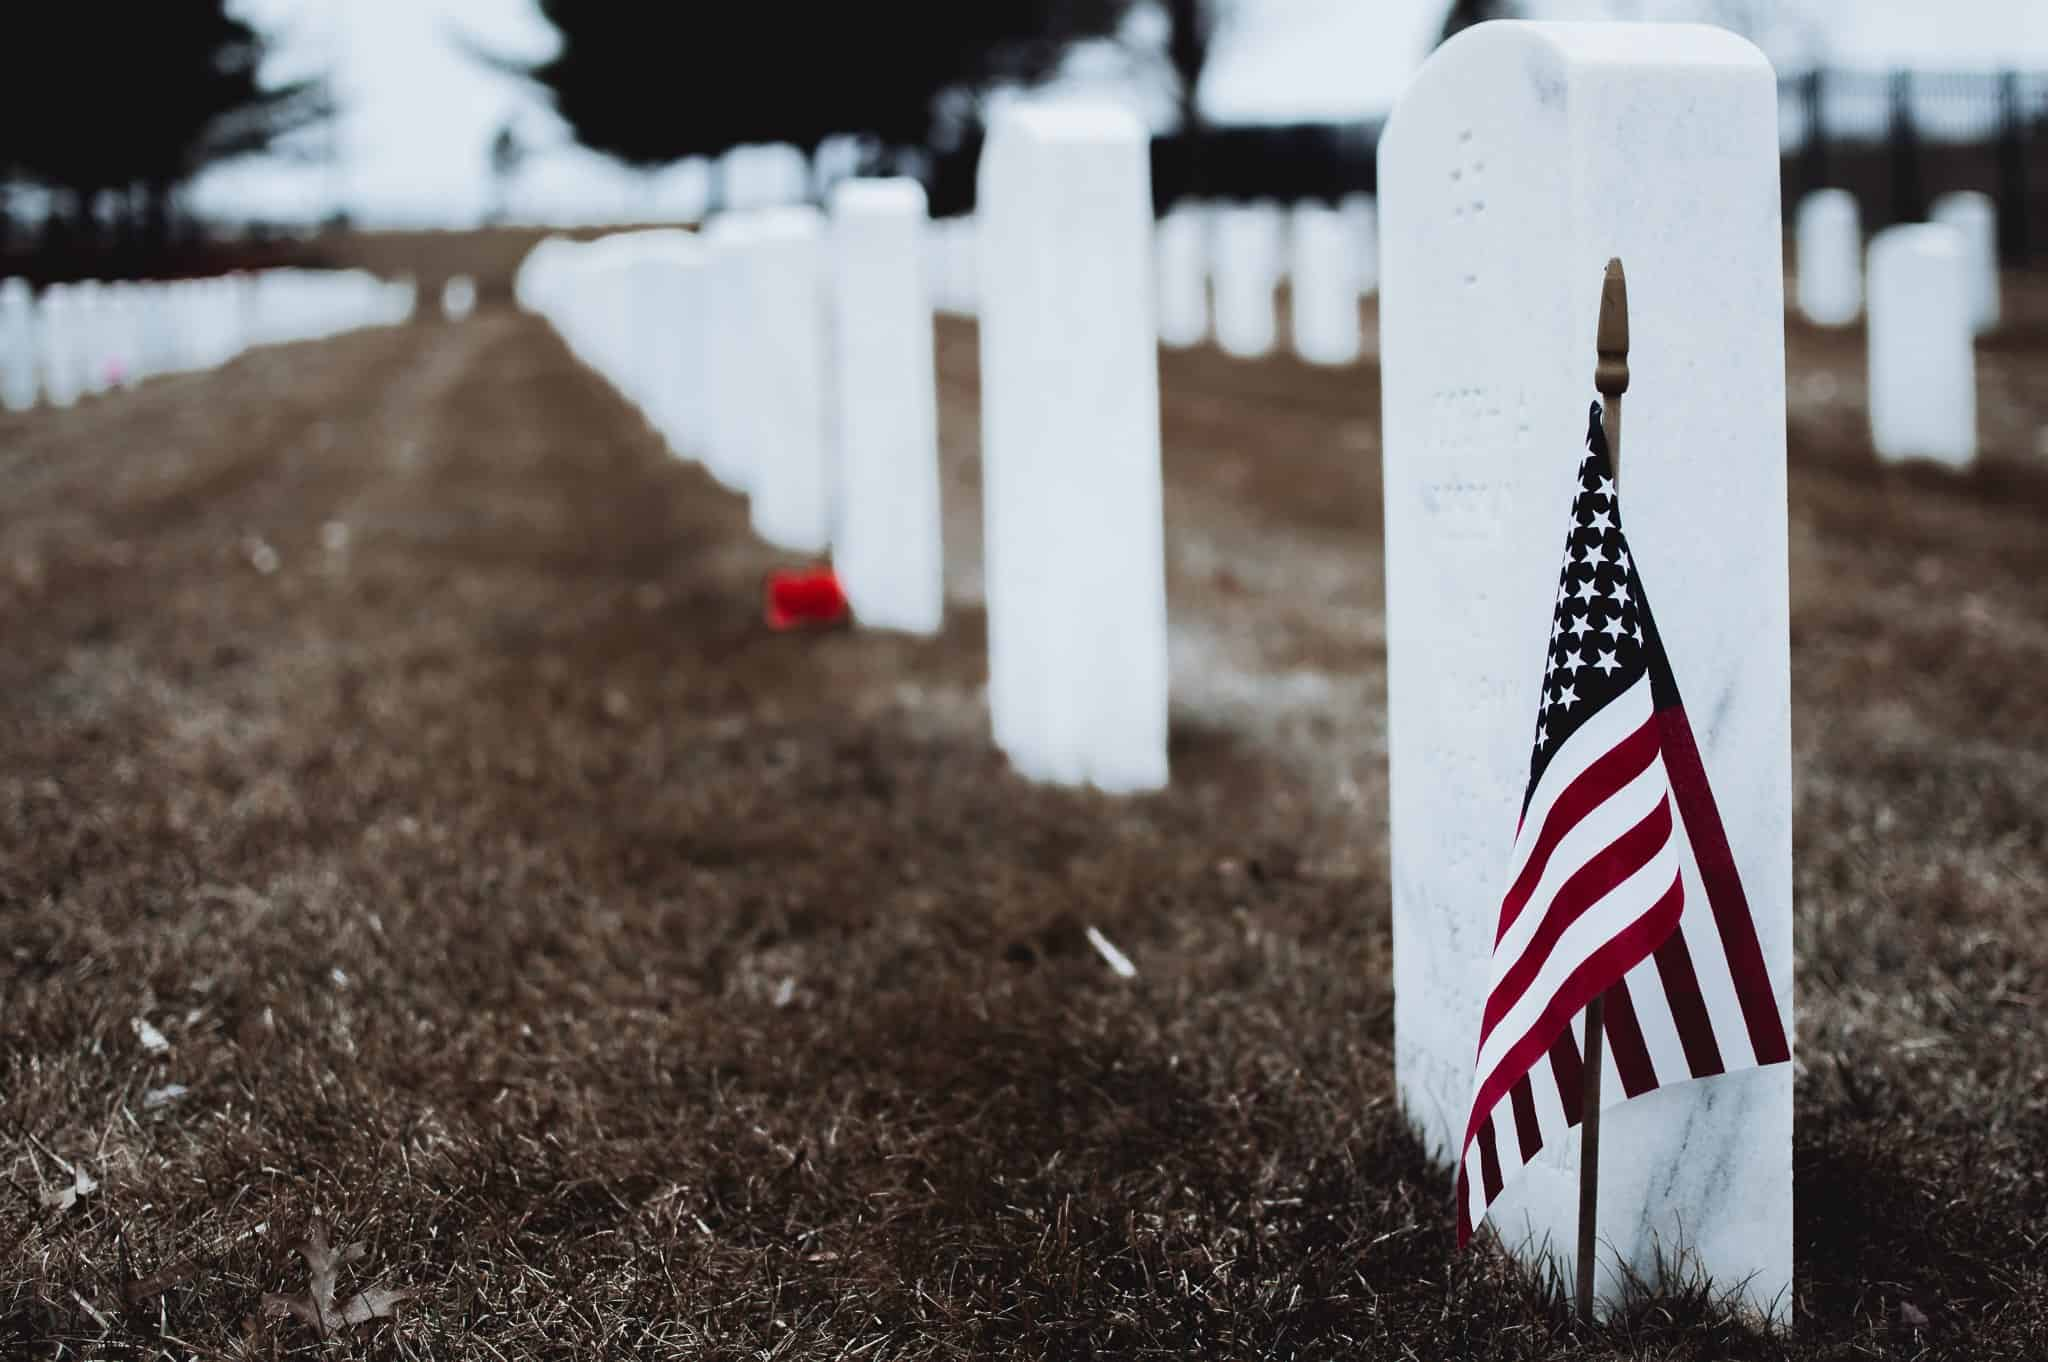 a star spangled banner next to a grave